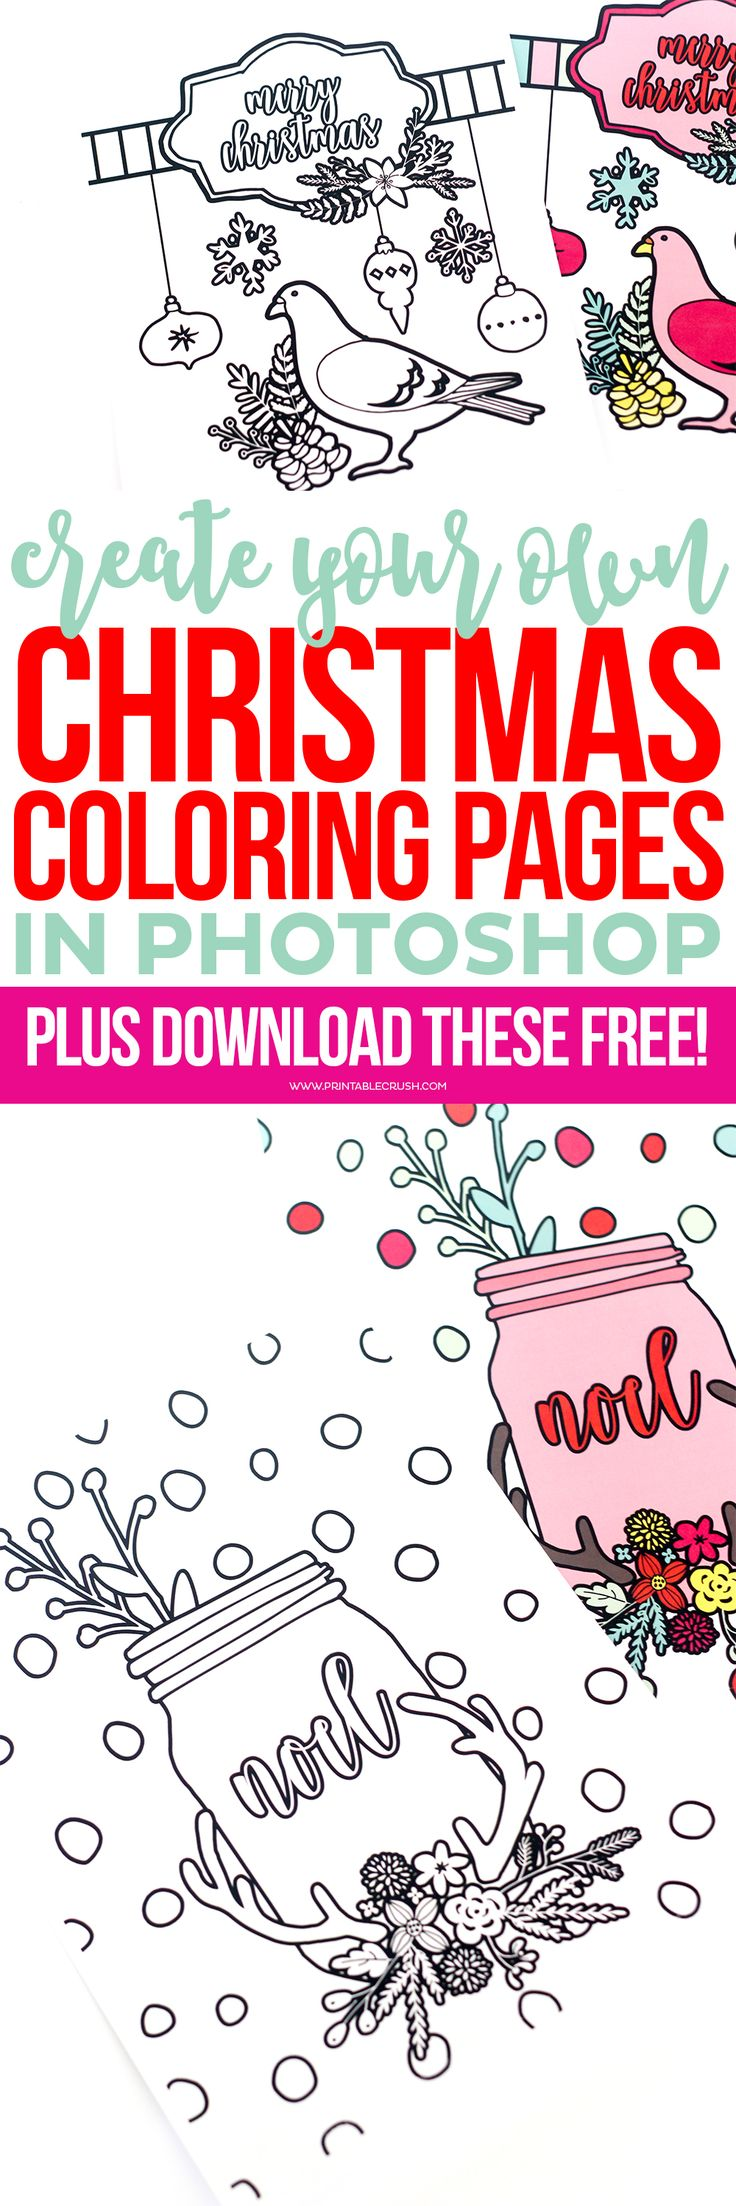 Make a coloring book page with photoshop - Learn To Create Christmas Coloring Pages In Photoshop In This Amazingly Easy Tutorial You